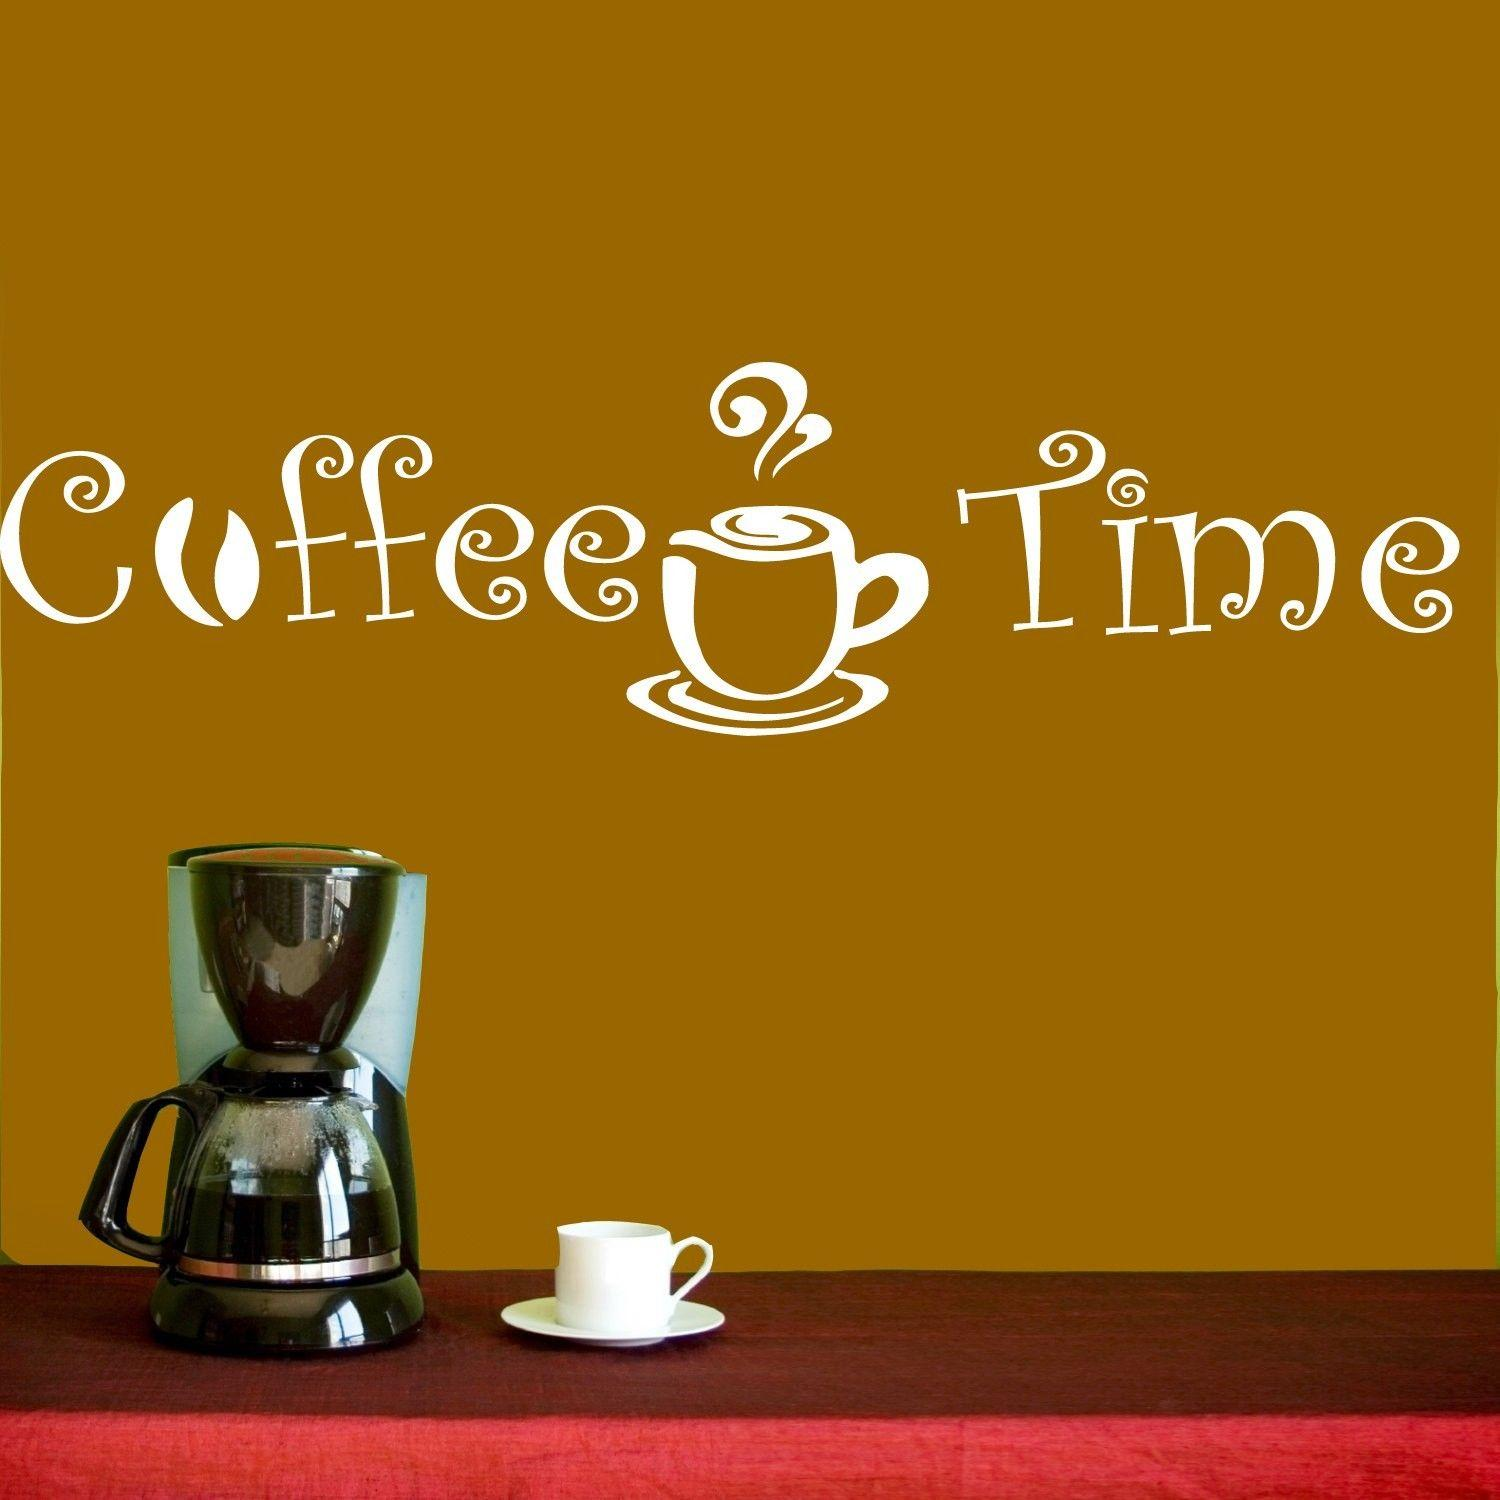 Wall Decal Vinyl Sticker Coffee Shop Cafe Kitchen Quote Coffee - Custom vinyl wall decals coffee